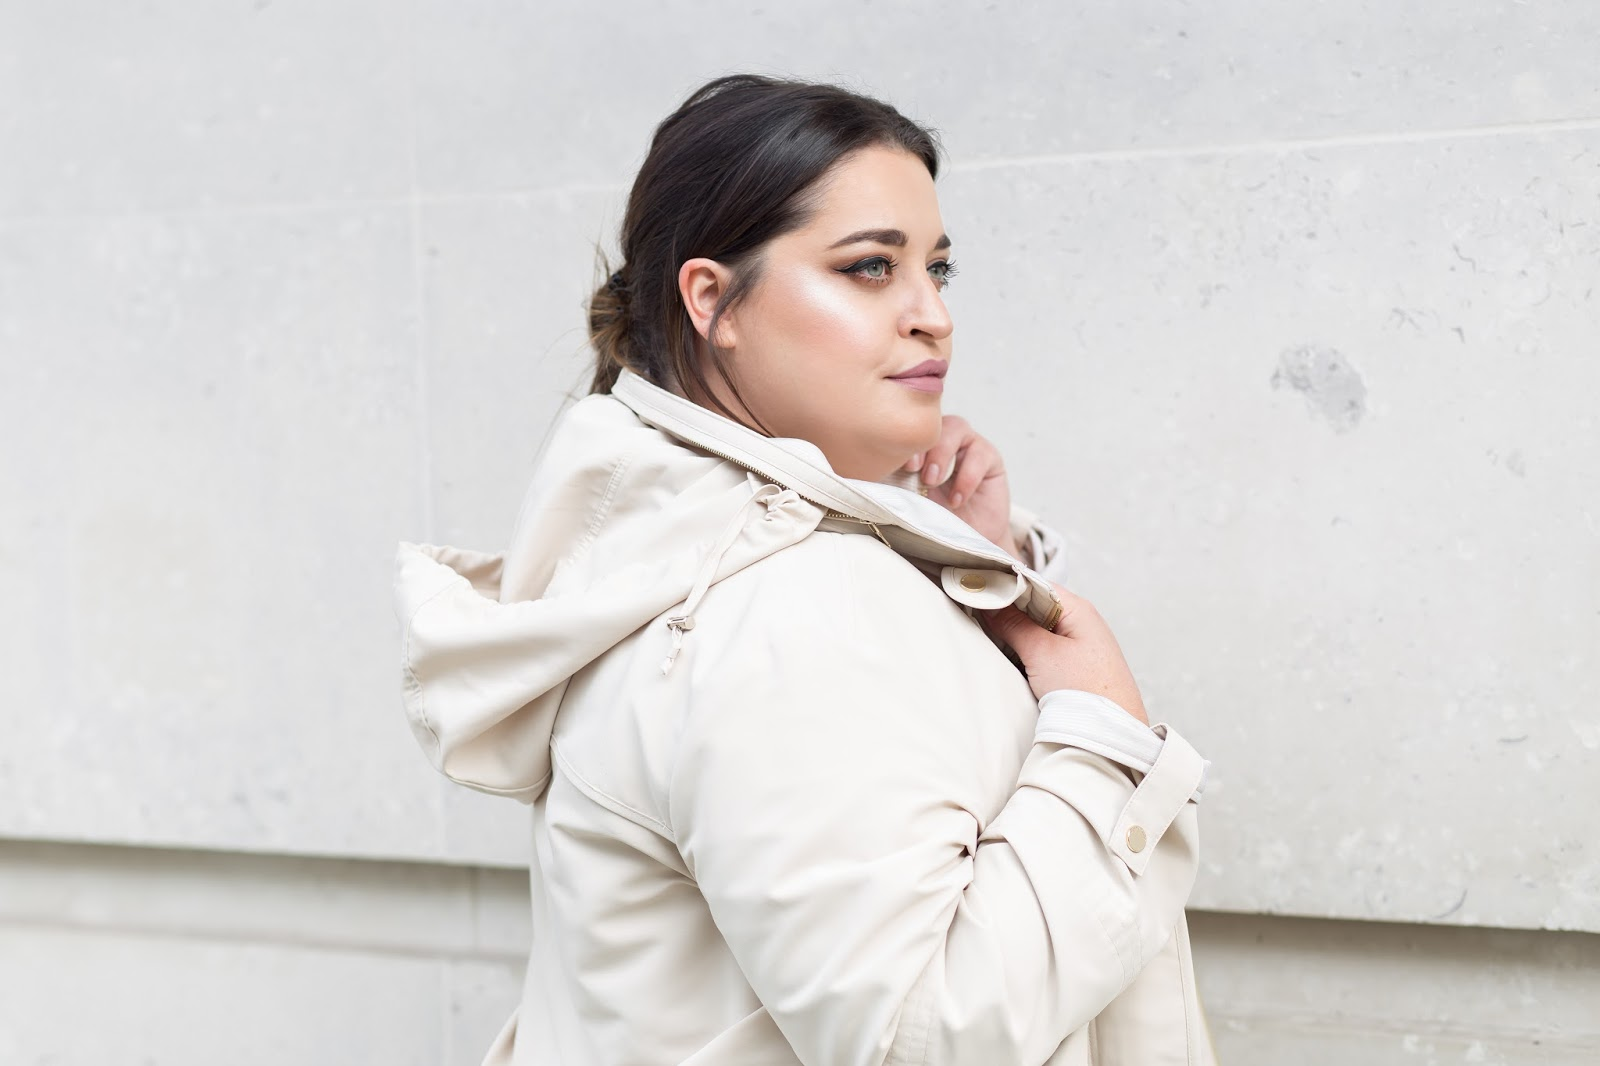 425856d9 For the final instalment of my collaboration with Marks & Spencer, I'm  going to show you how I decided to style this Trench Jacket. Check my  previous posts ...